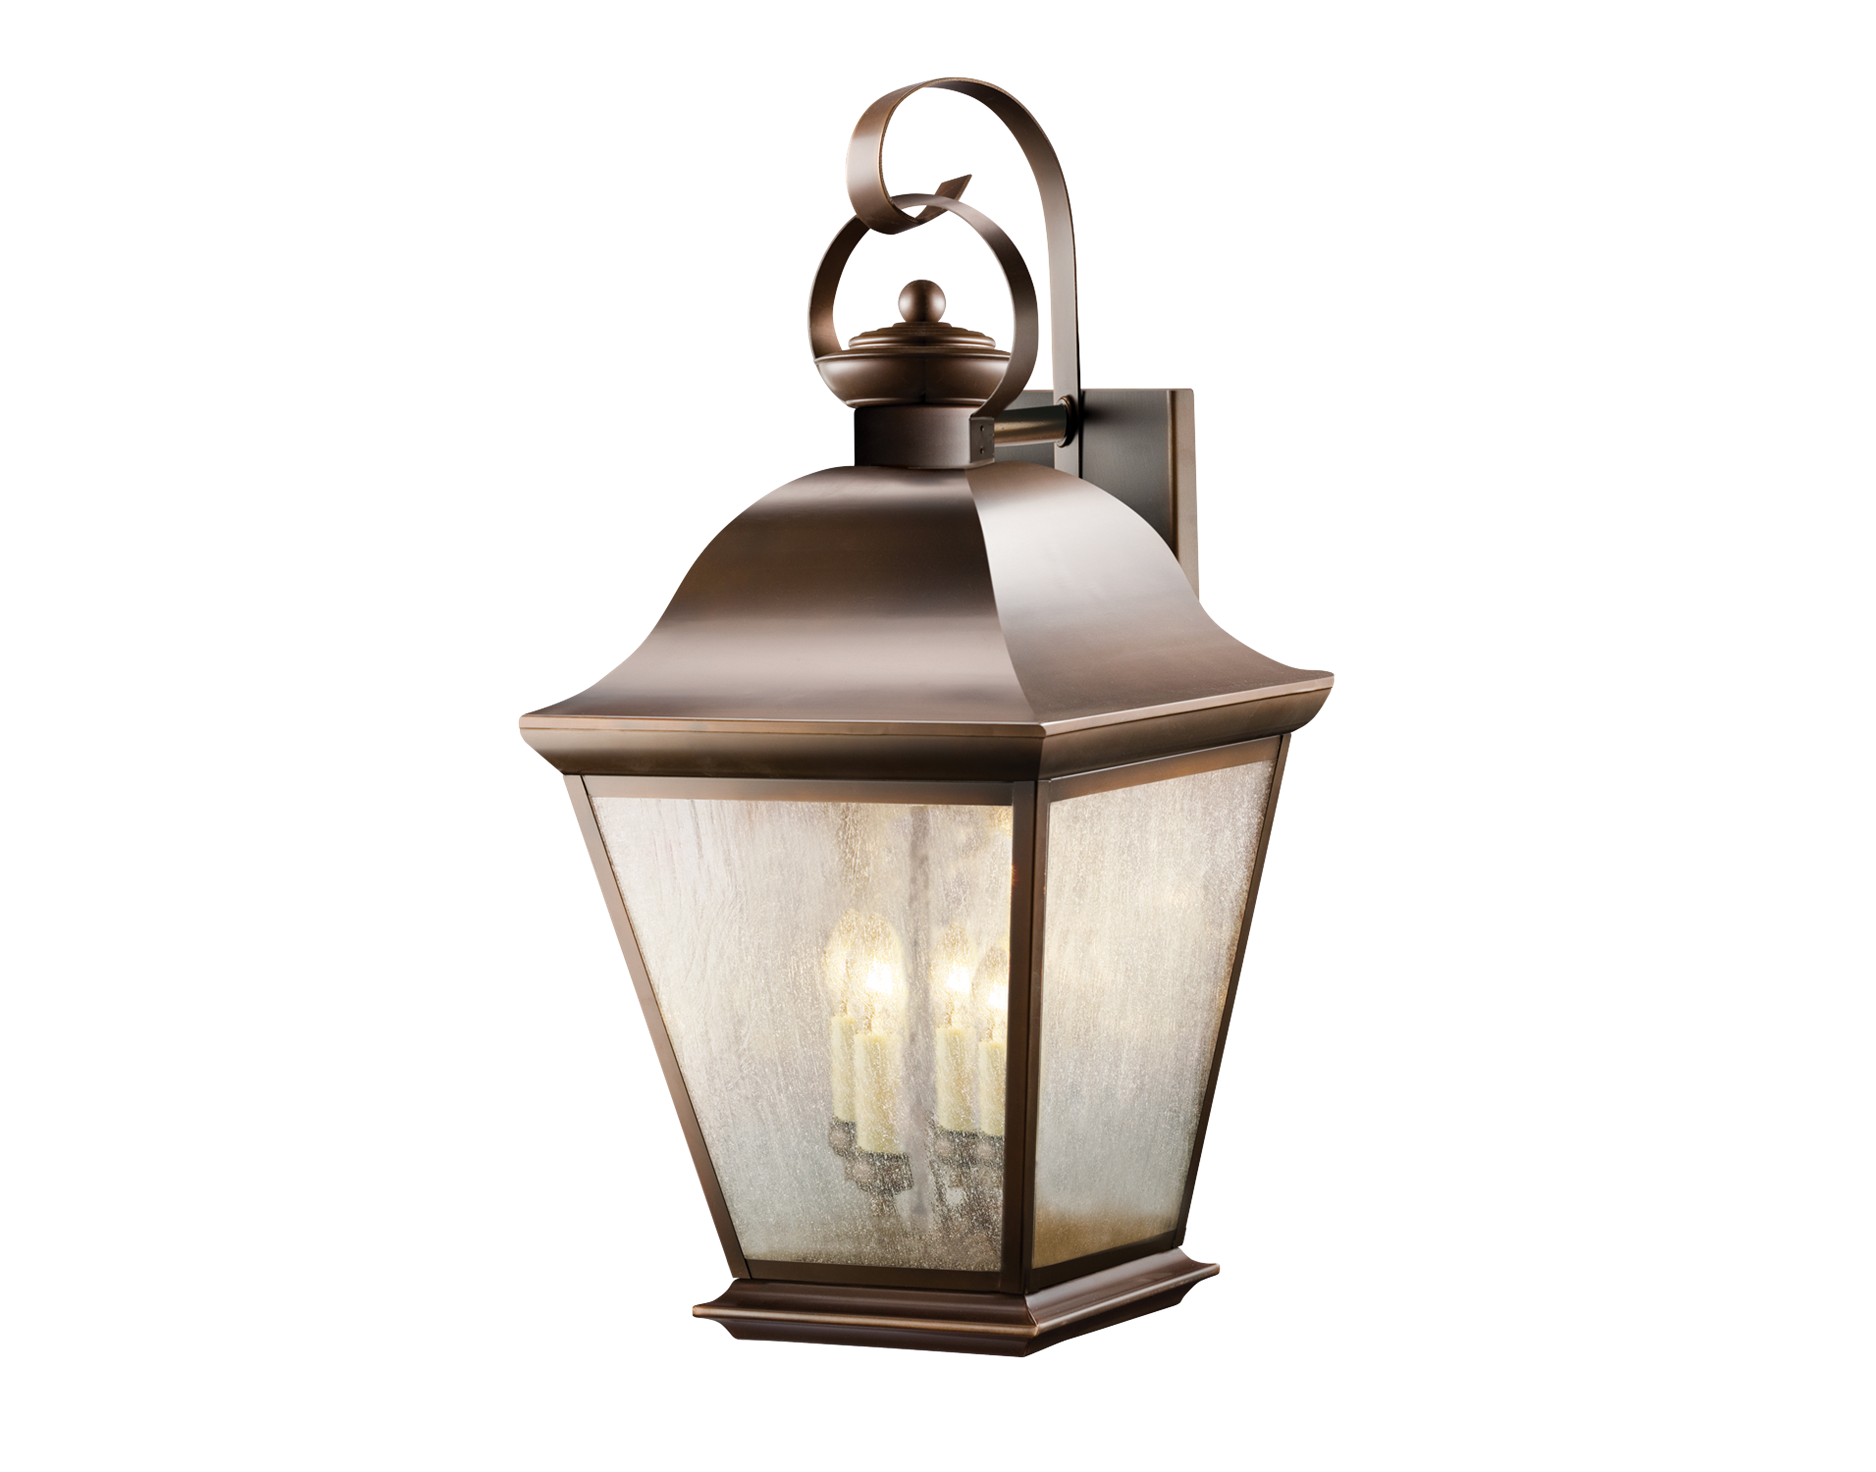 Lamp clipart wall lamp. Home lite city exterior